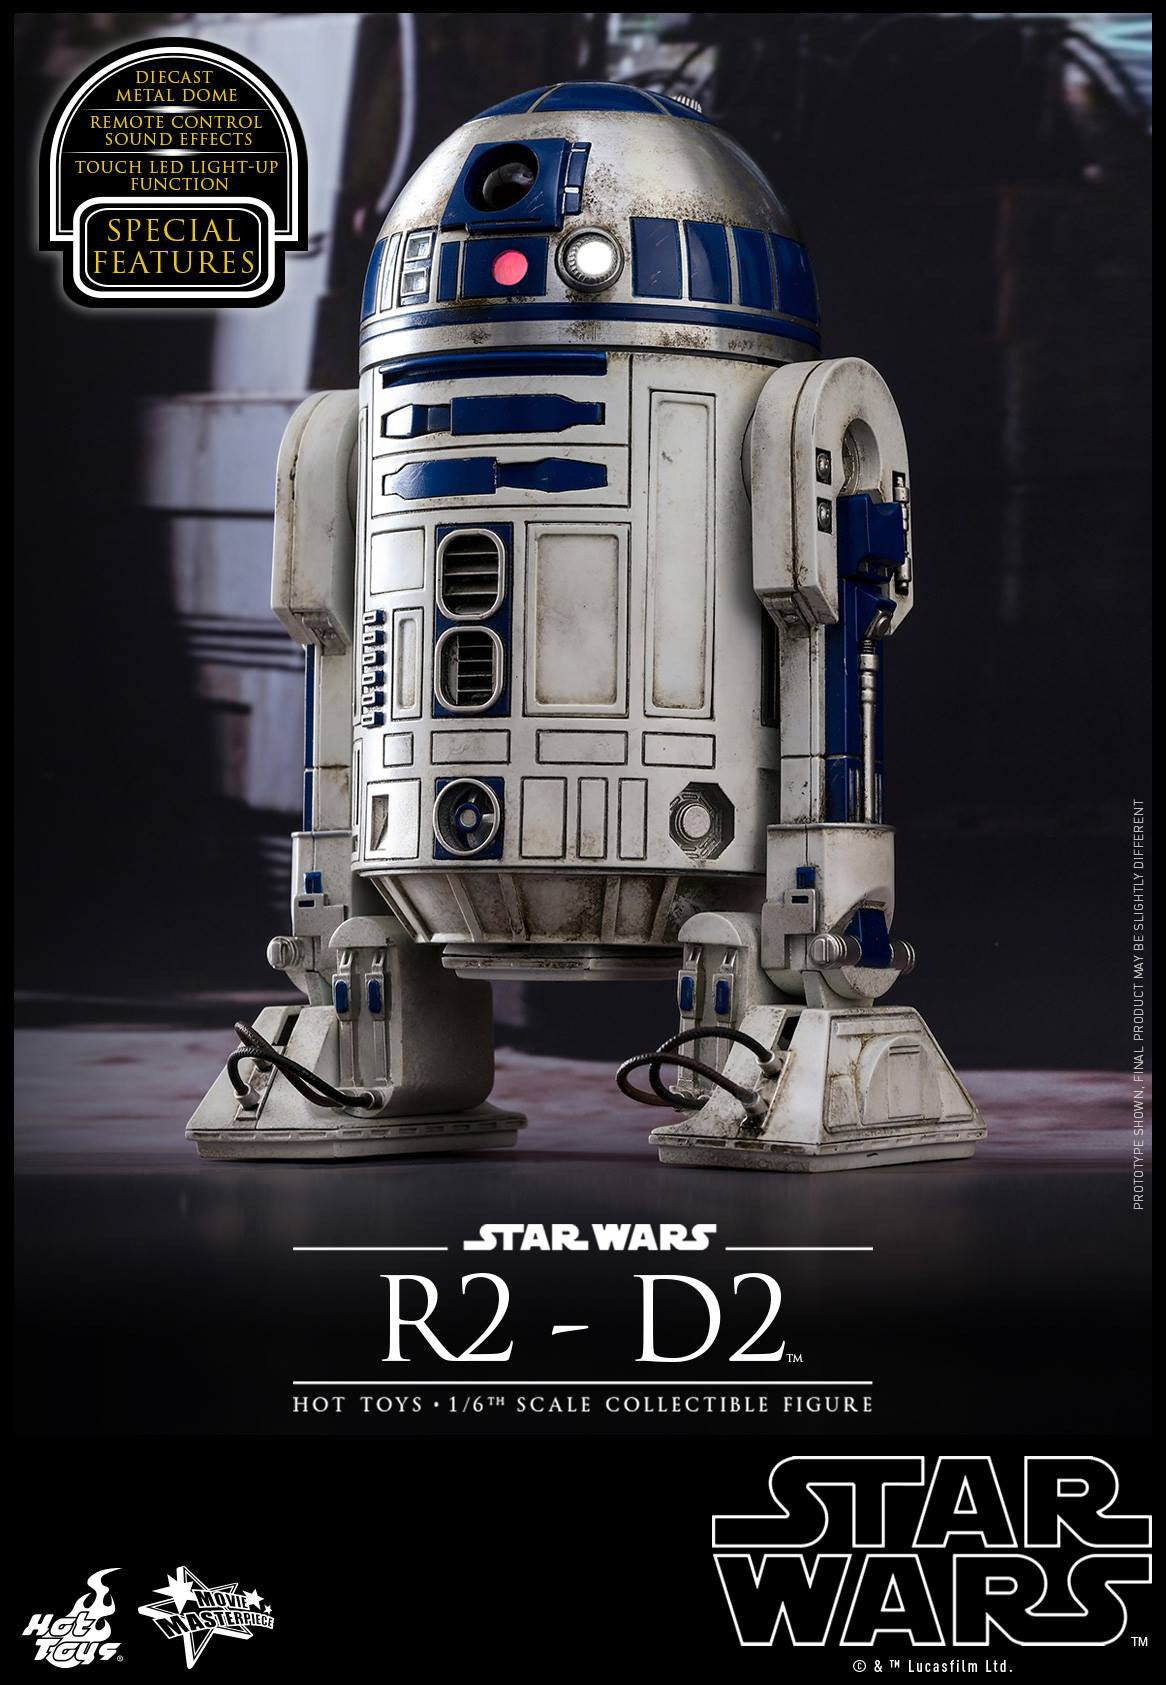 Hot Toys - MMS408 - Star Wars: The Force Awakens - R2-D2 - Marvelous Toys - 5